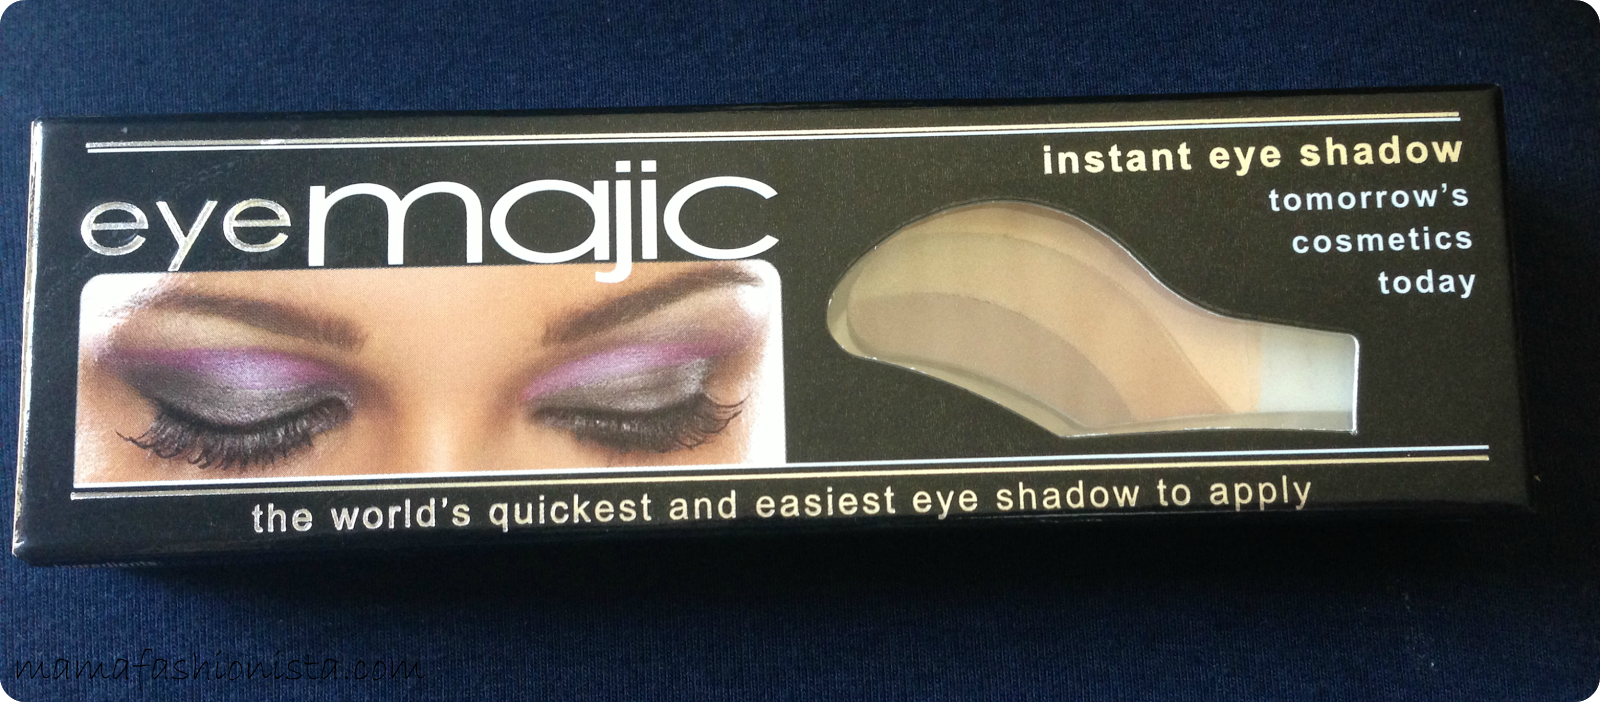 Mama Fashionista: Chic Your Eyes with Ease with Eye Majic!